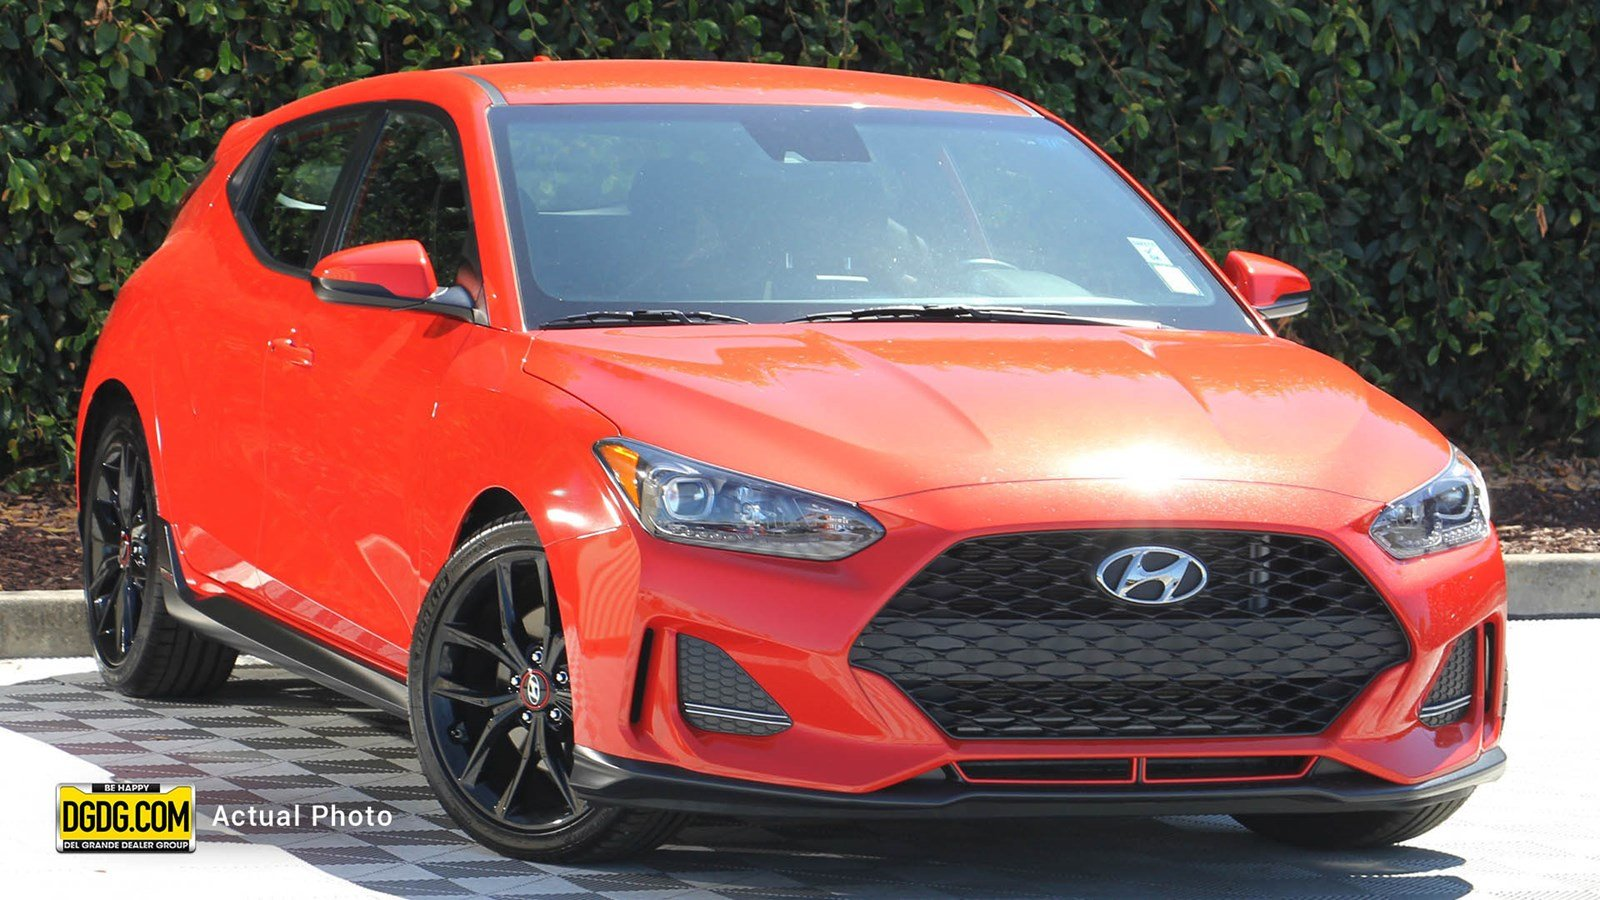 Certified Pre-Owned 2019 Hyundai Veloster Turbo R-Spec